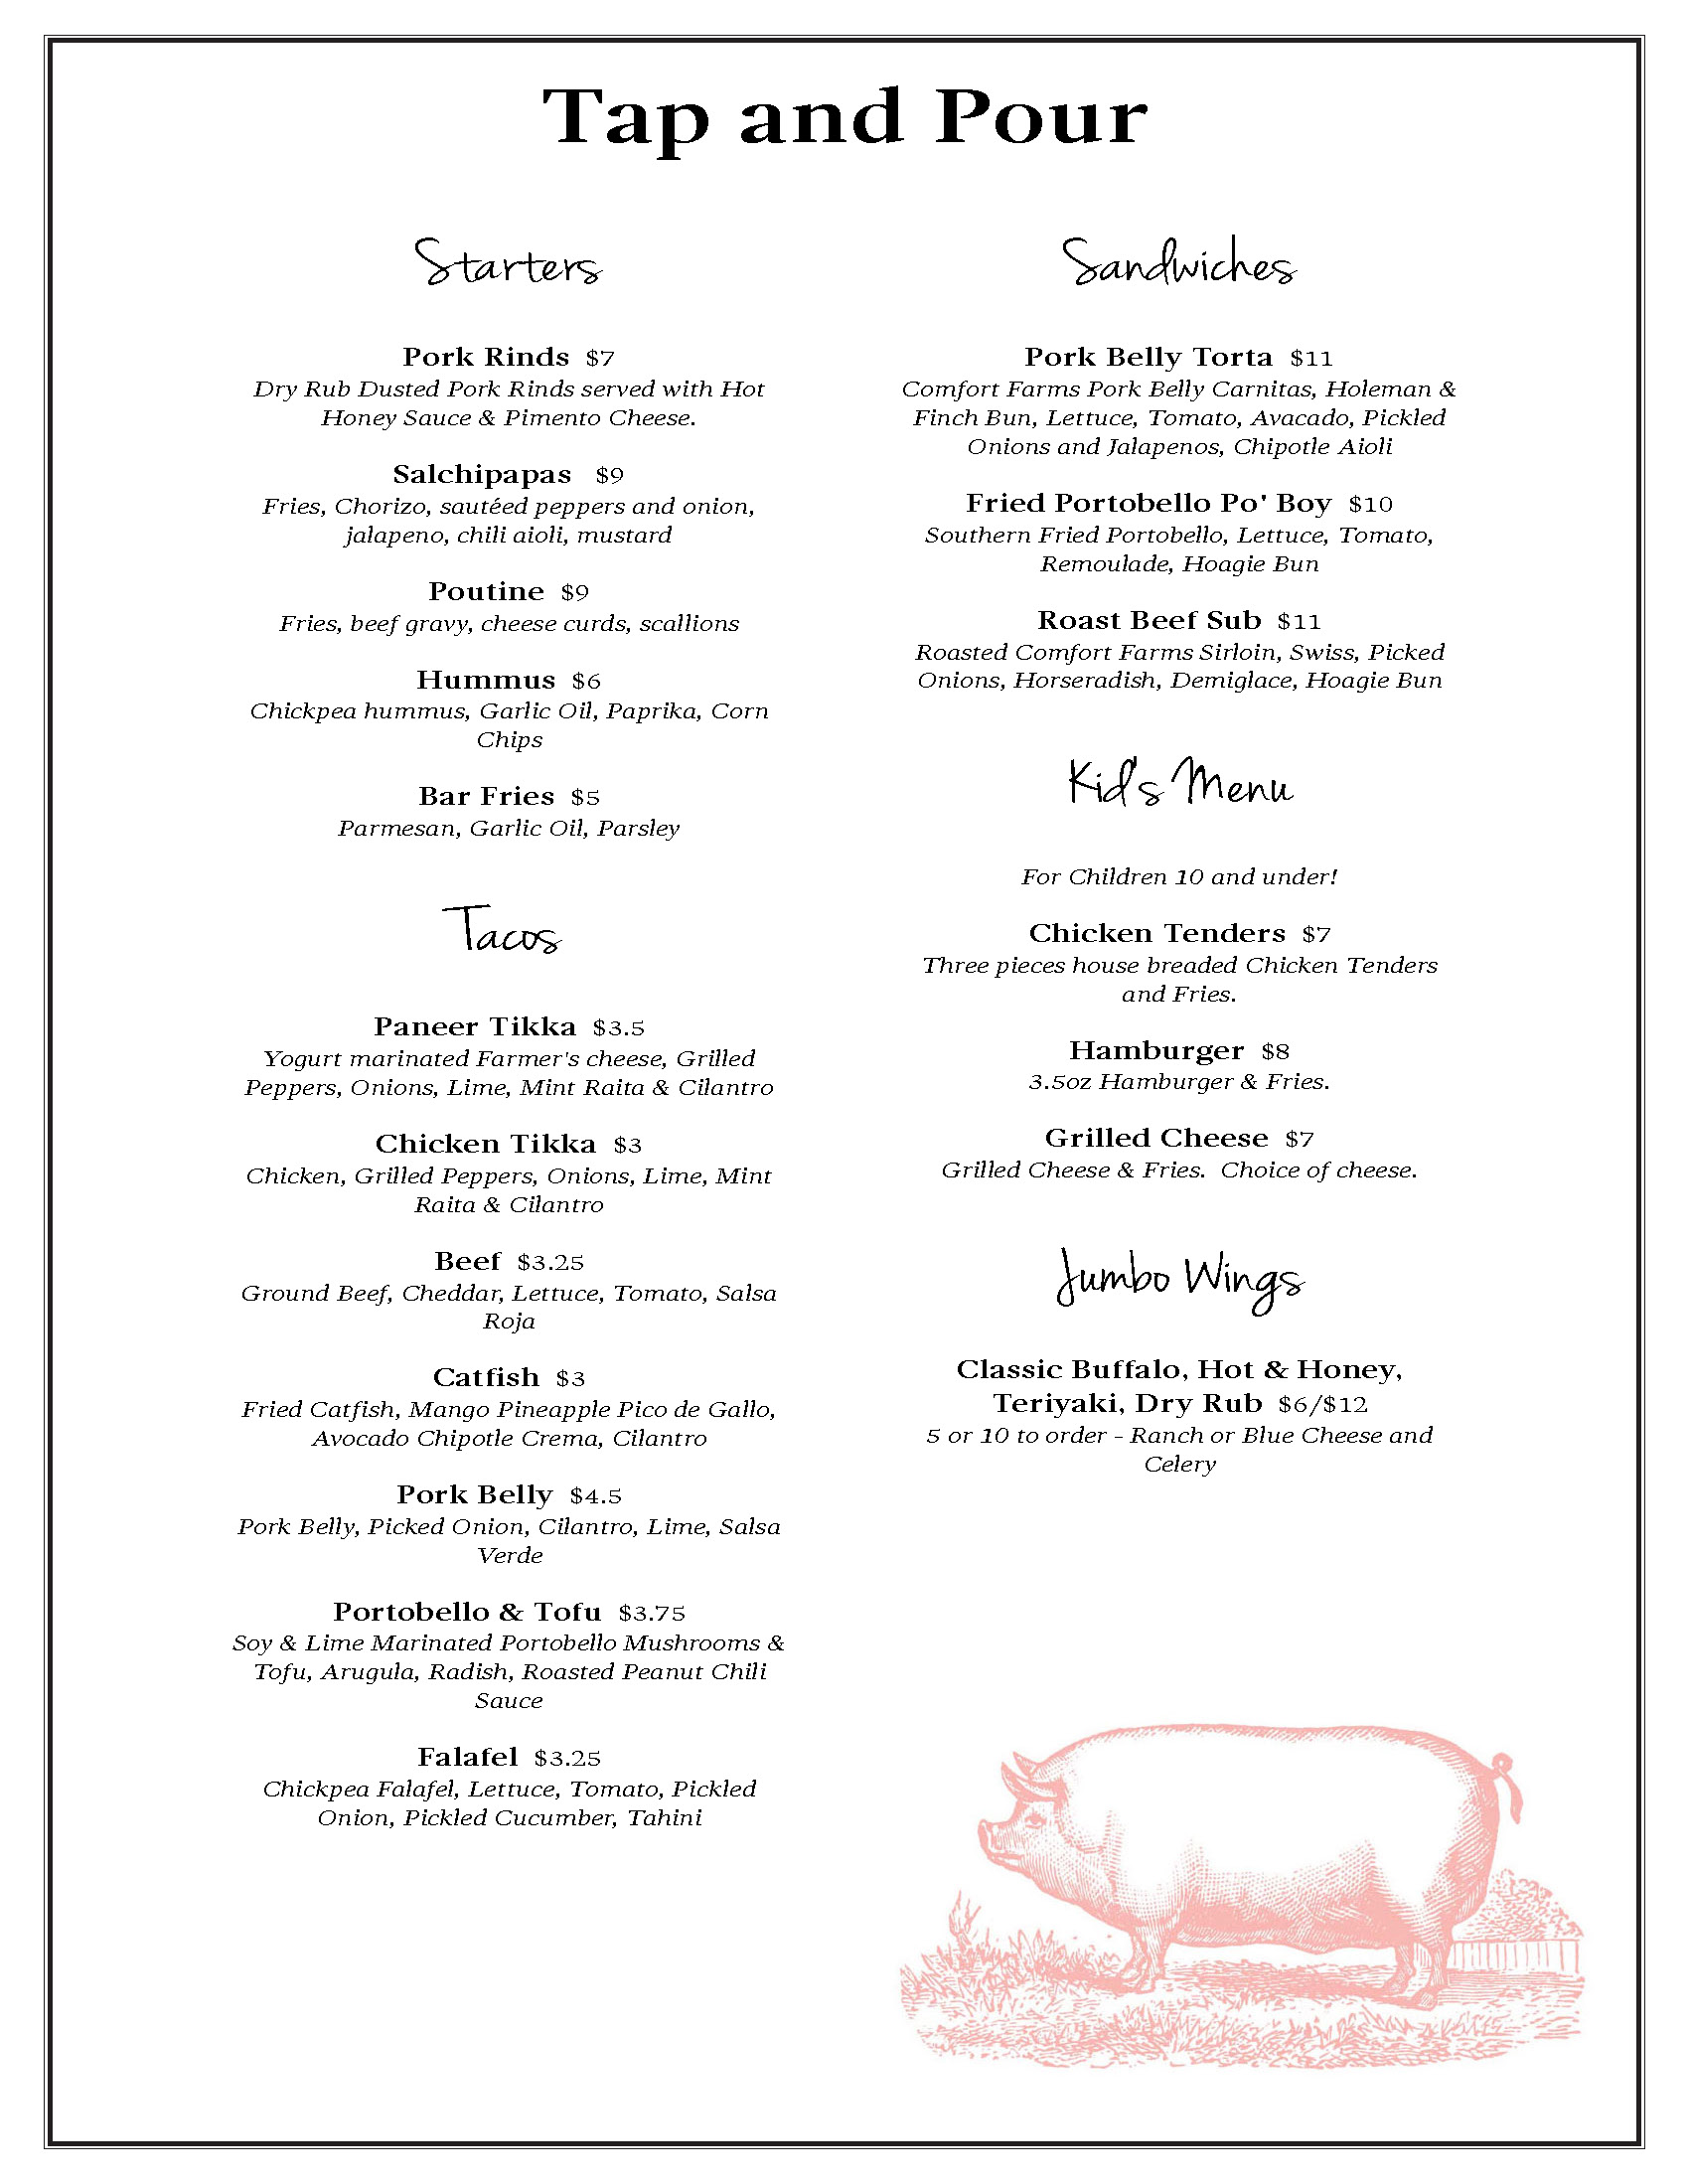 Tap and Pour menu_Page_1